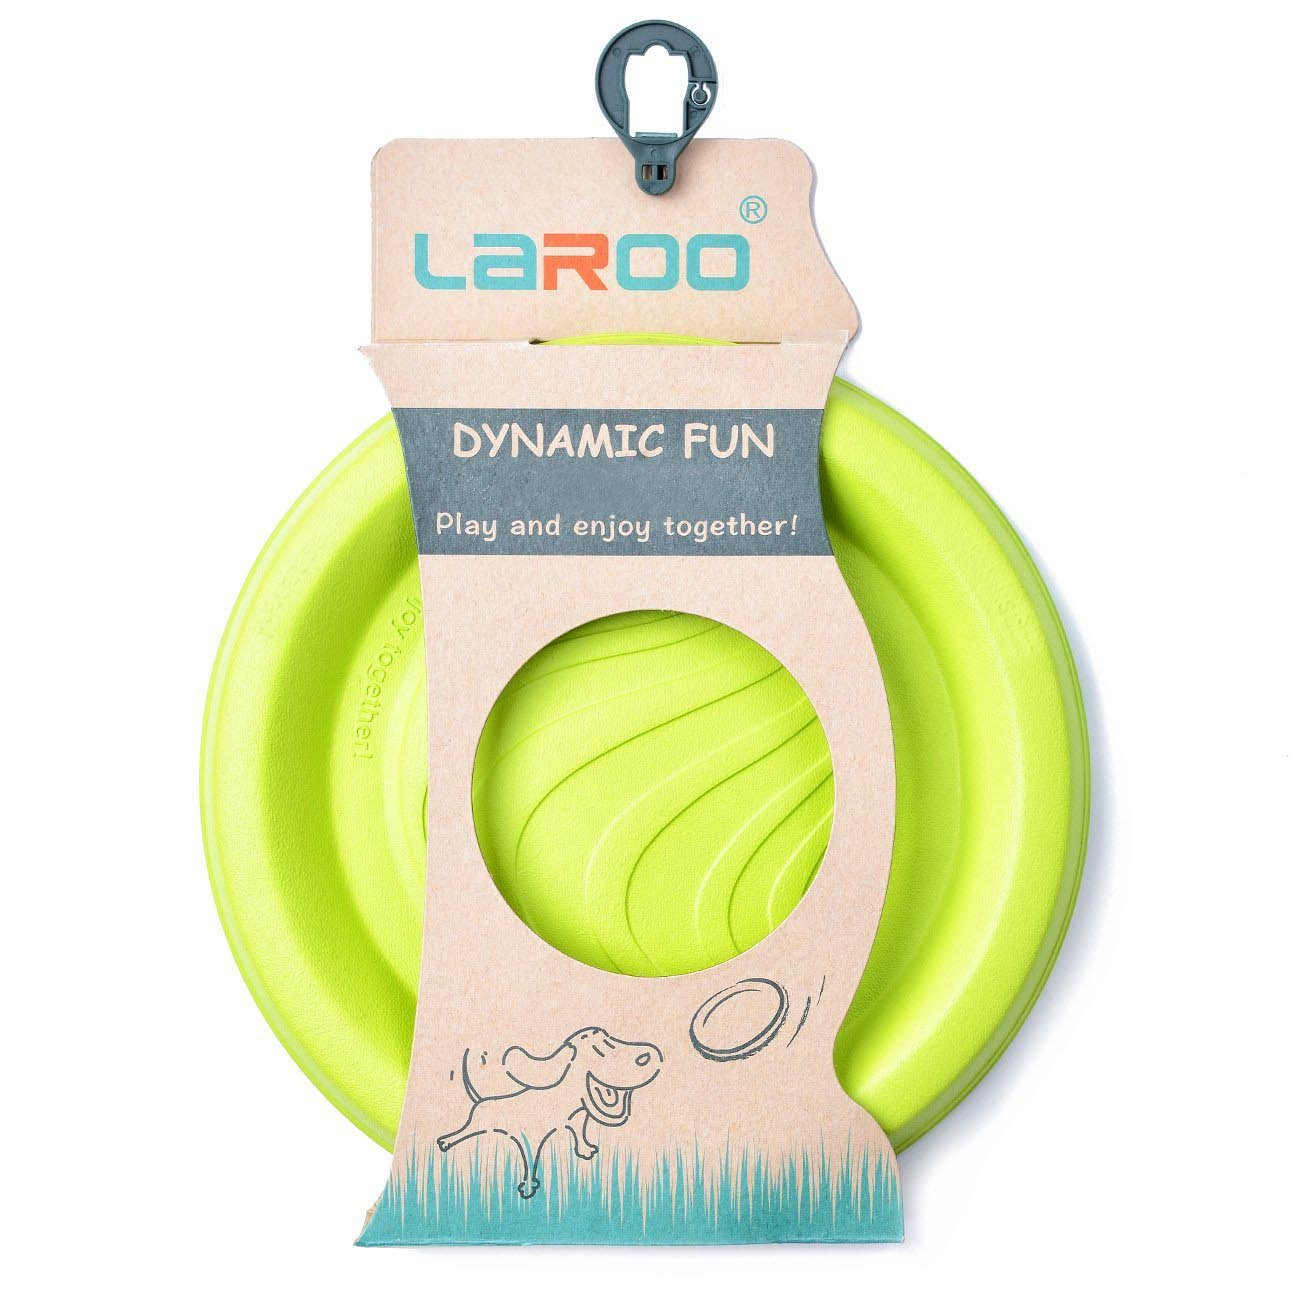 LaRoo Indestructible Flying Disc Dog Play Toy 100% Natural Non-toxic Durable Rubber Pet Chew Toy for Outdoor Interactive Fun with your Puppy - Green by LaRoo